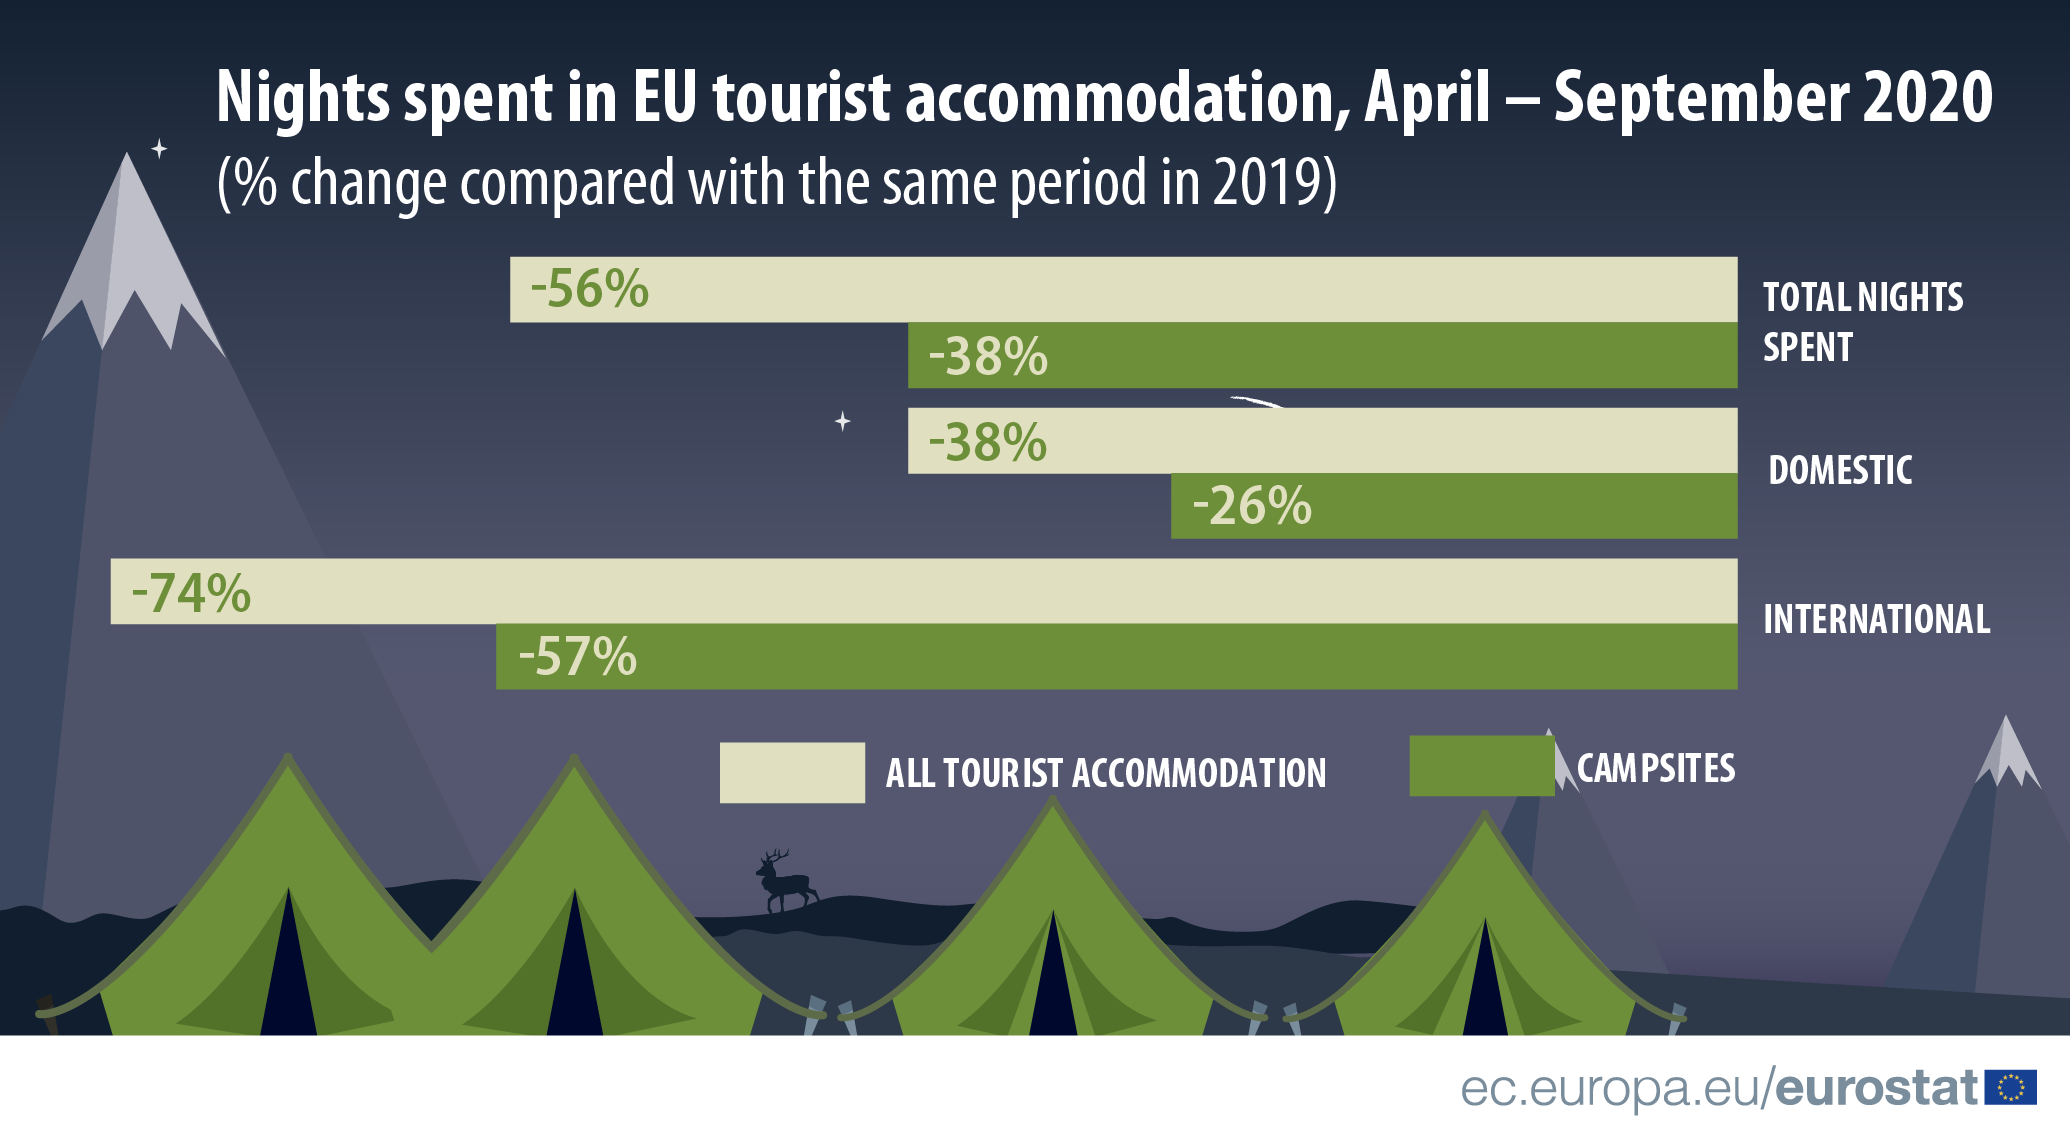 Infographic: Nights spent in EU tourist accommodation